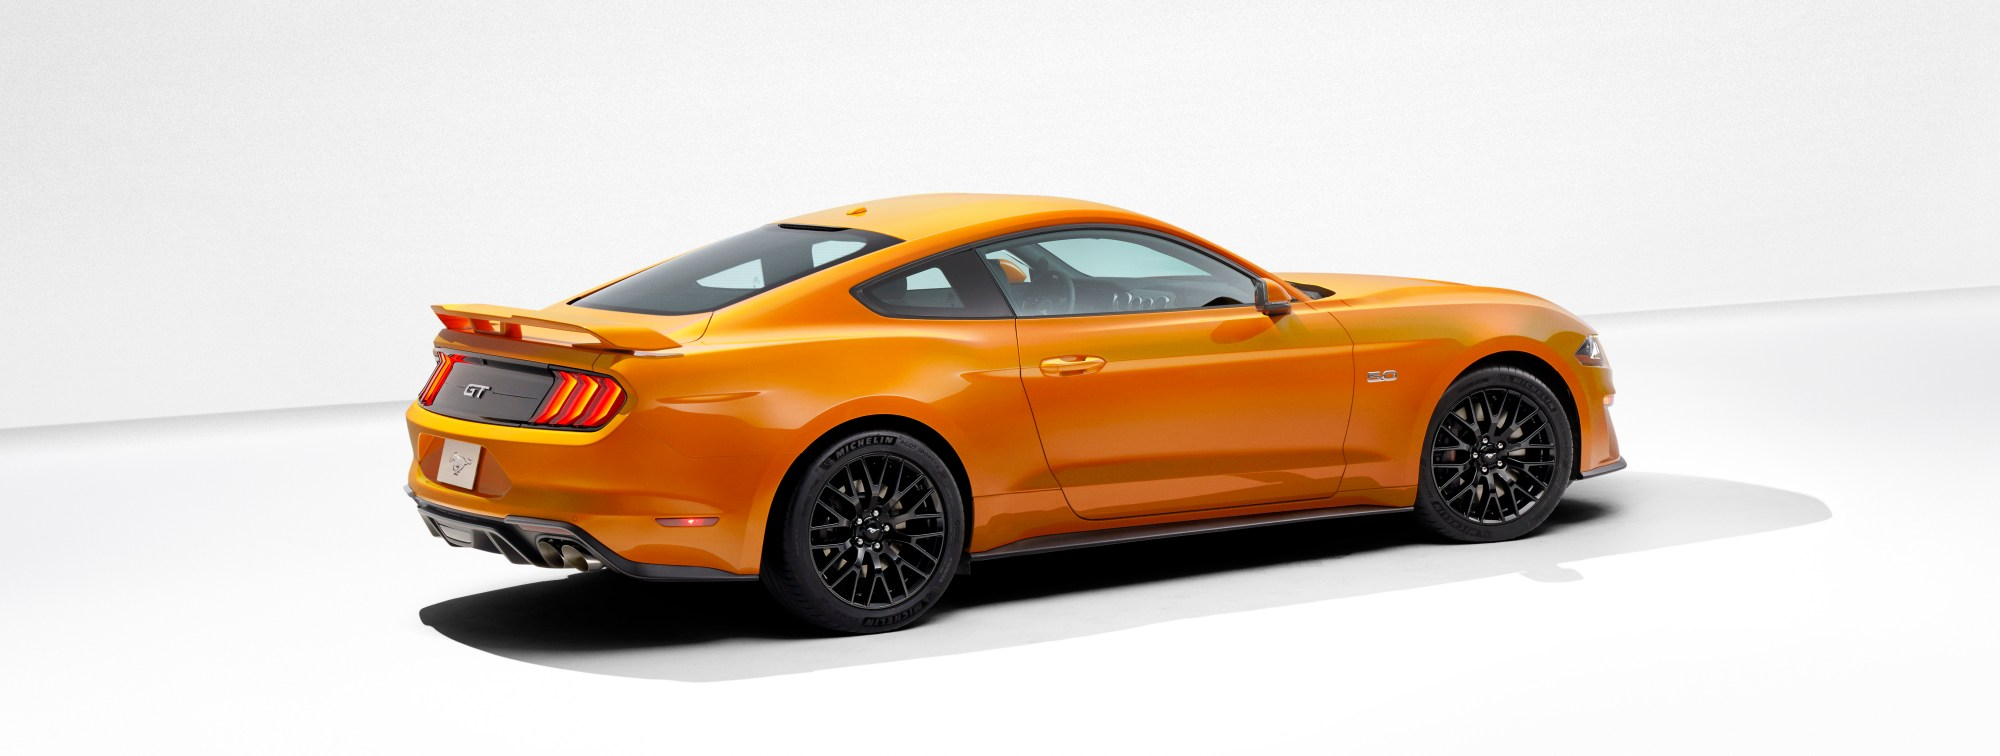 hight resolution of ford s newest mustang drops the v6 engine for the first time in decades the verge